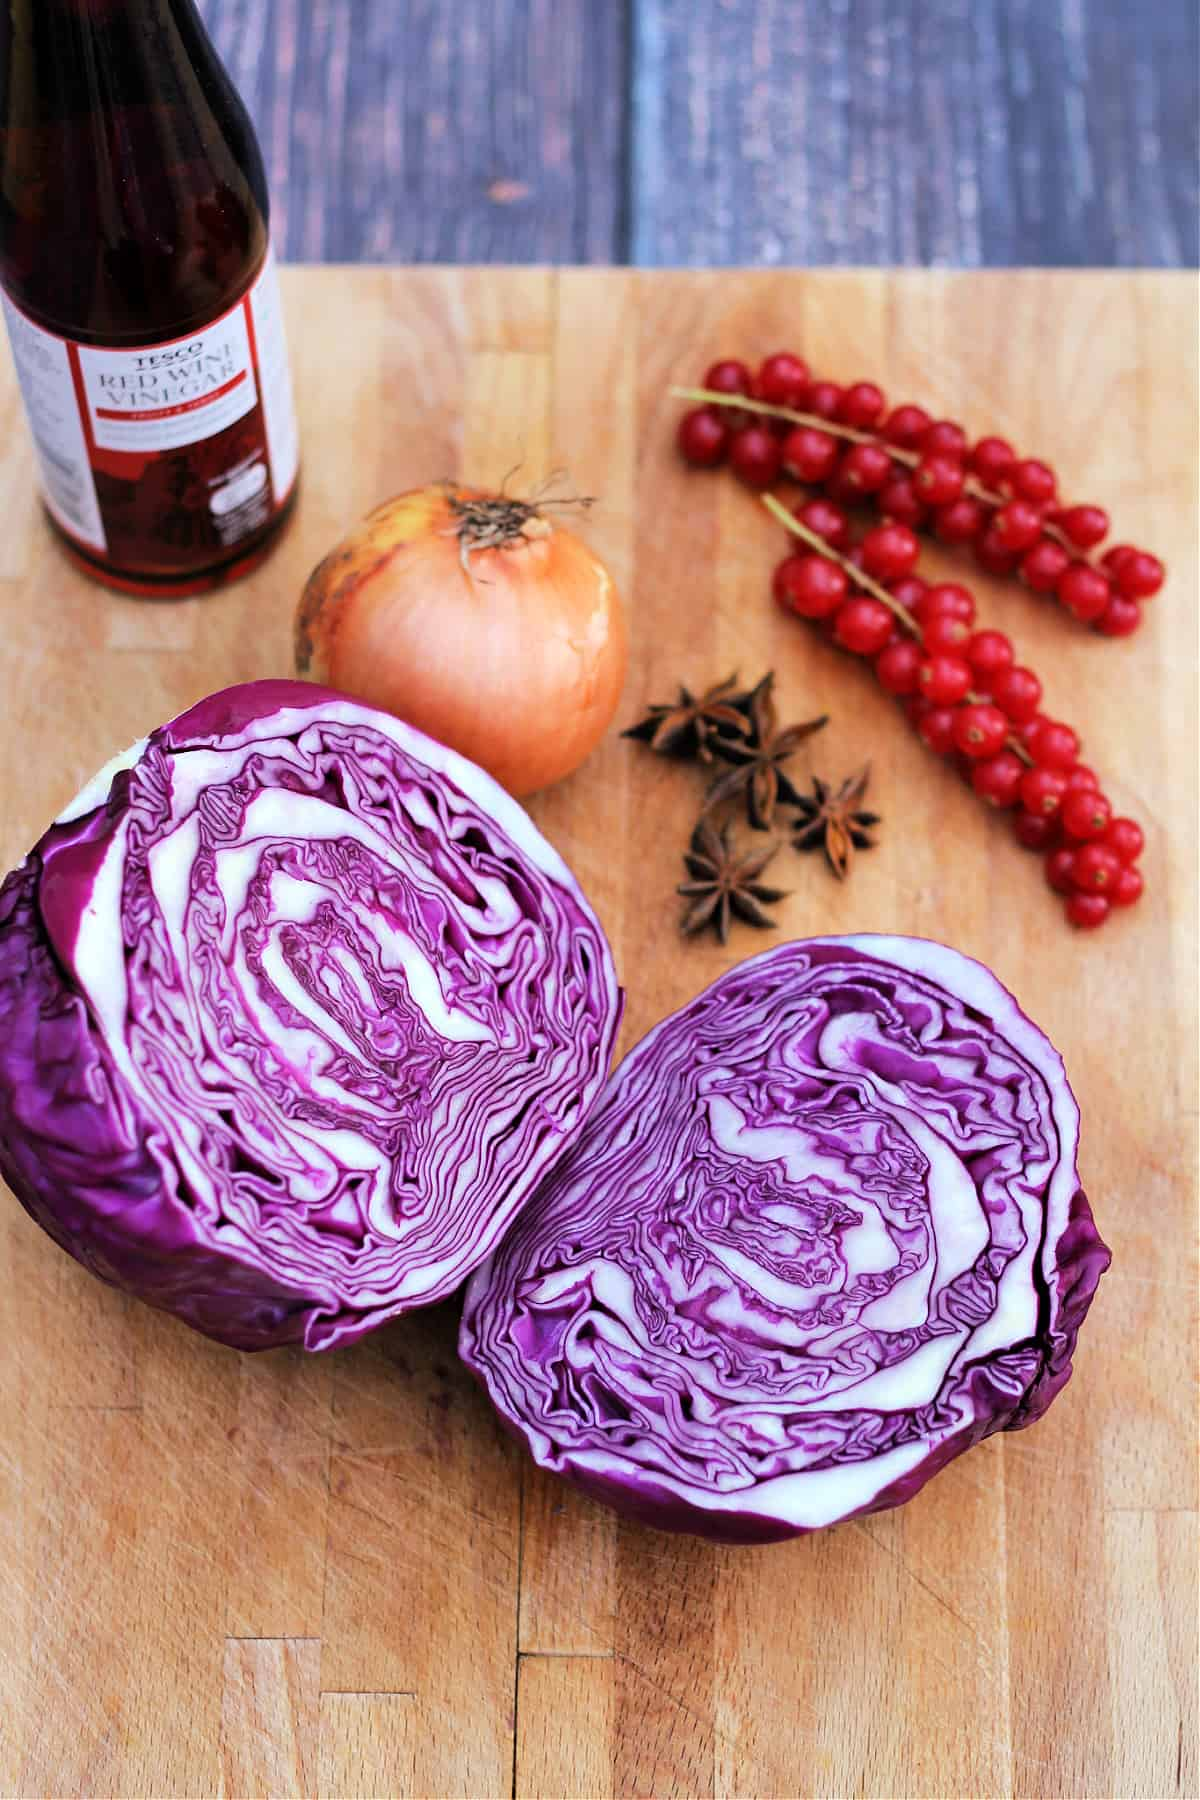 A halved red cabbage, onion, star anise and bottle of red wine vinegar on a board.